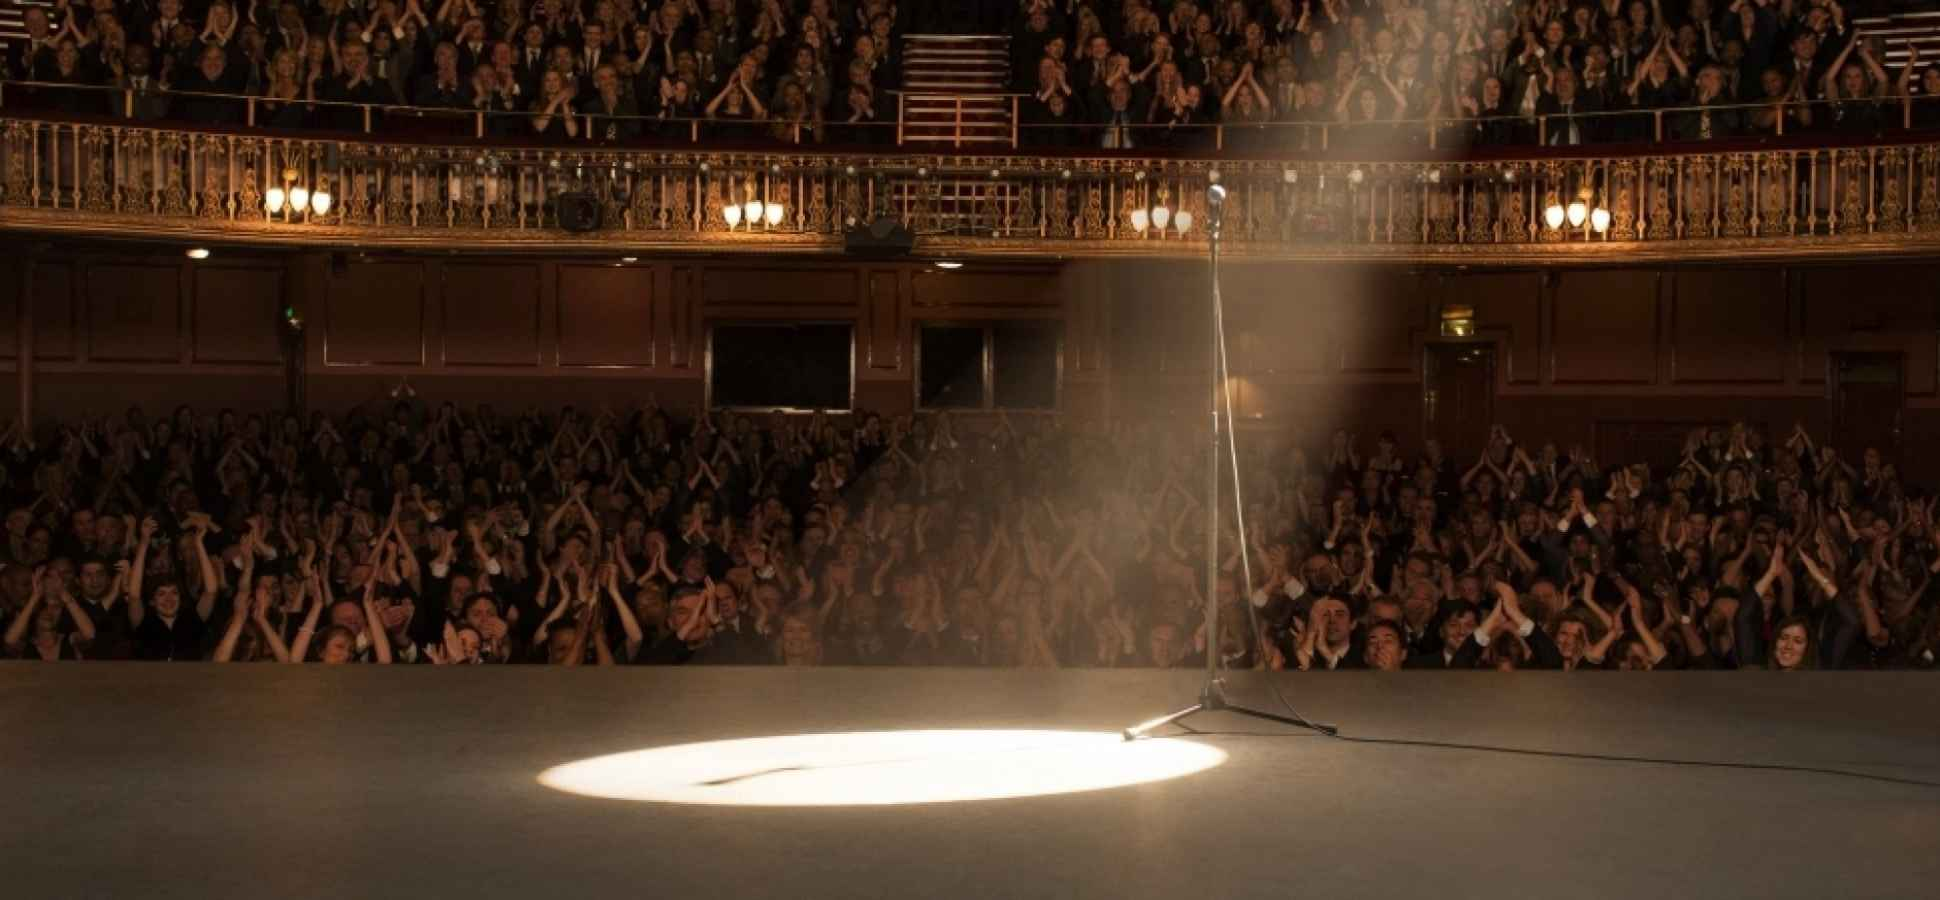 How to Overcome Your Fear of Public Speaking: 4 Simple Steps